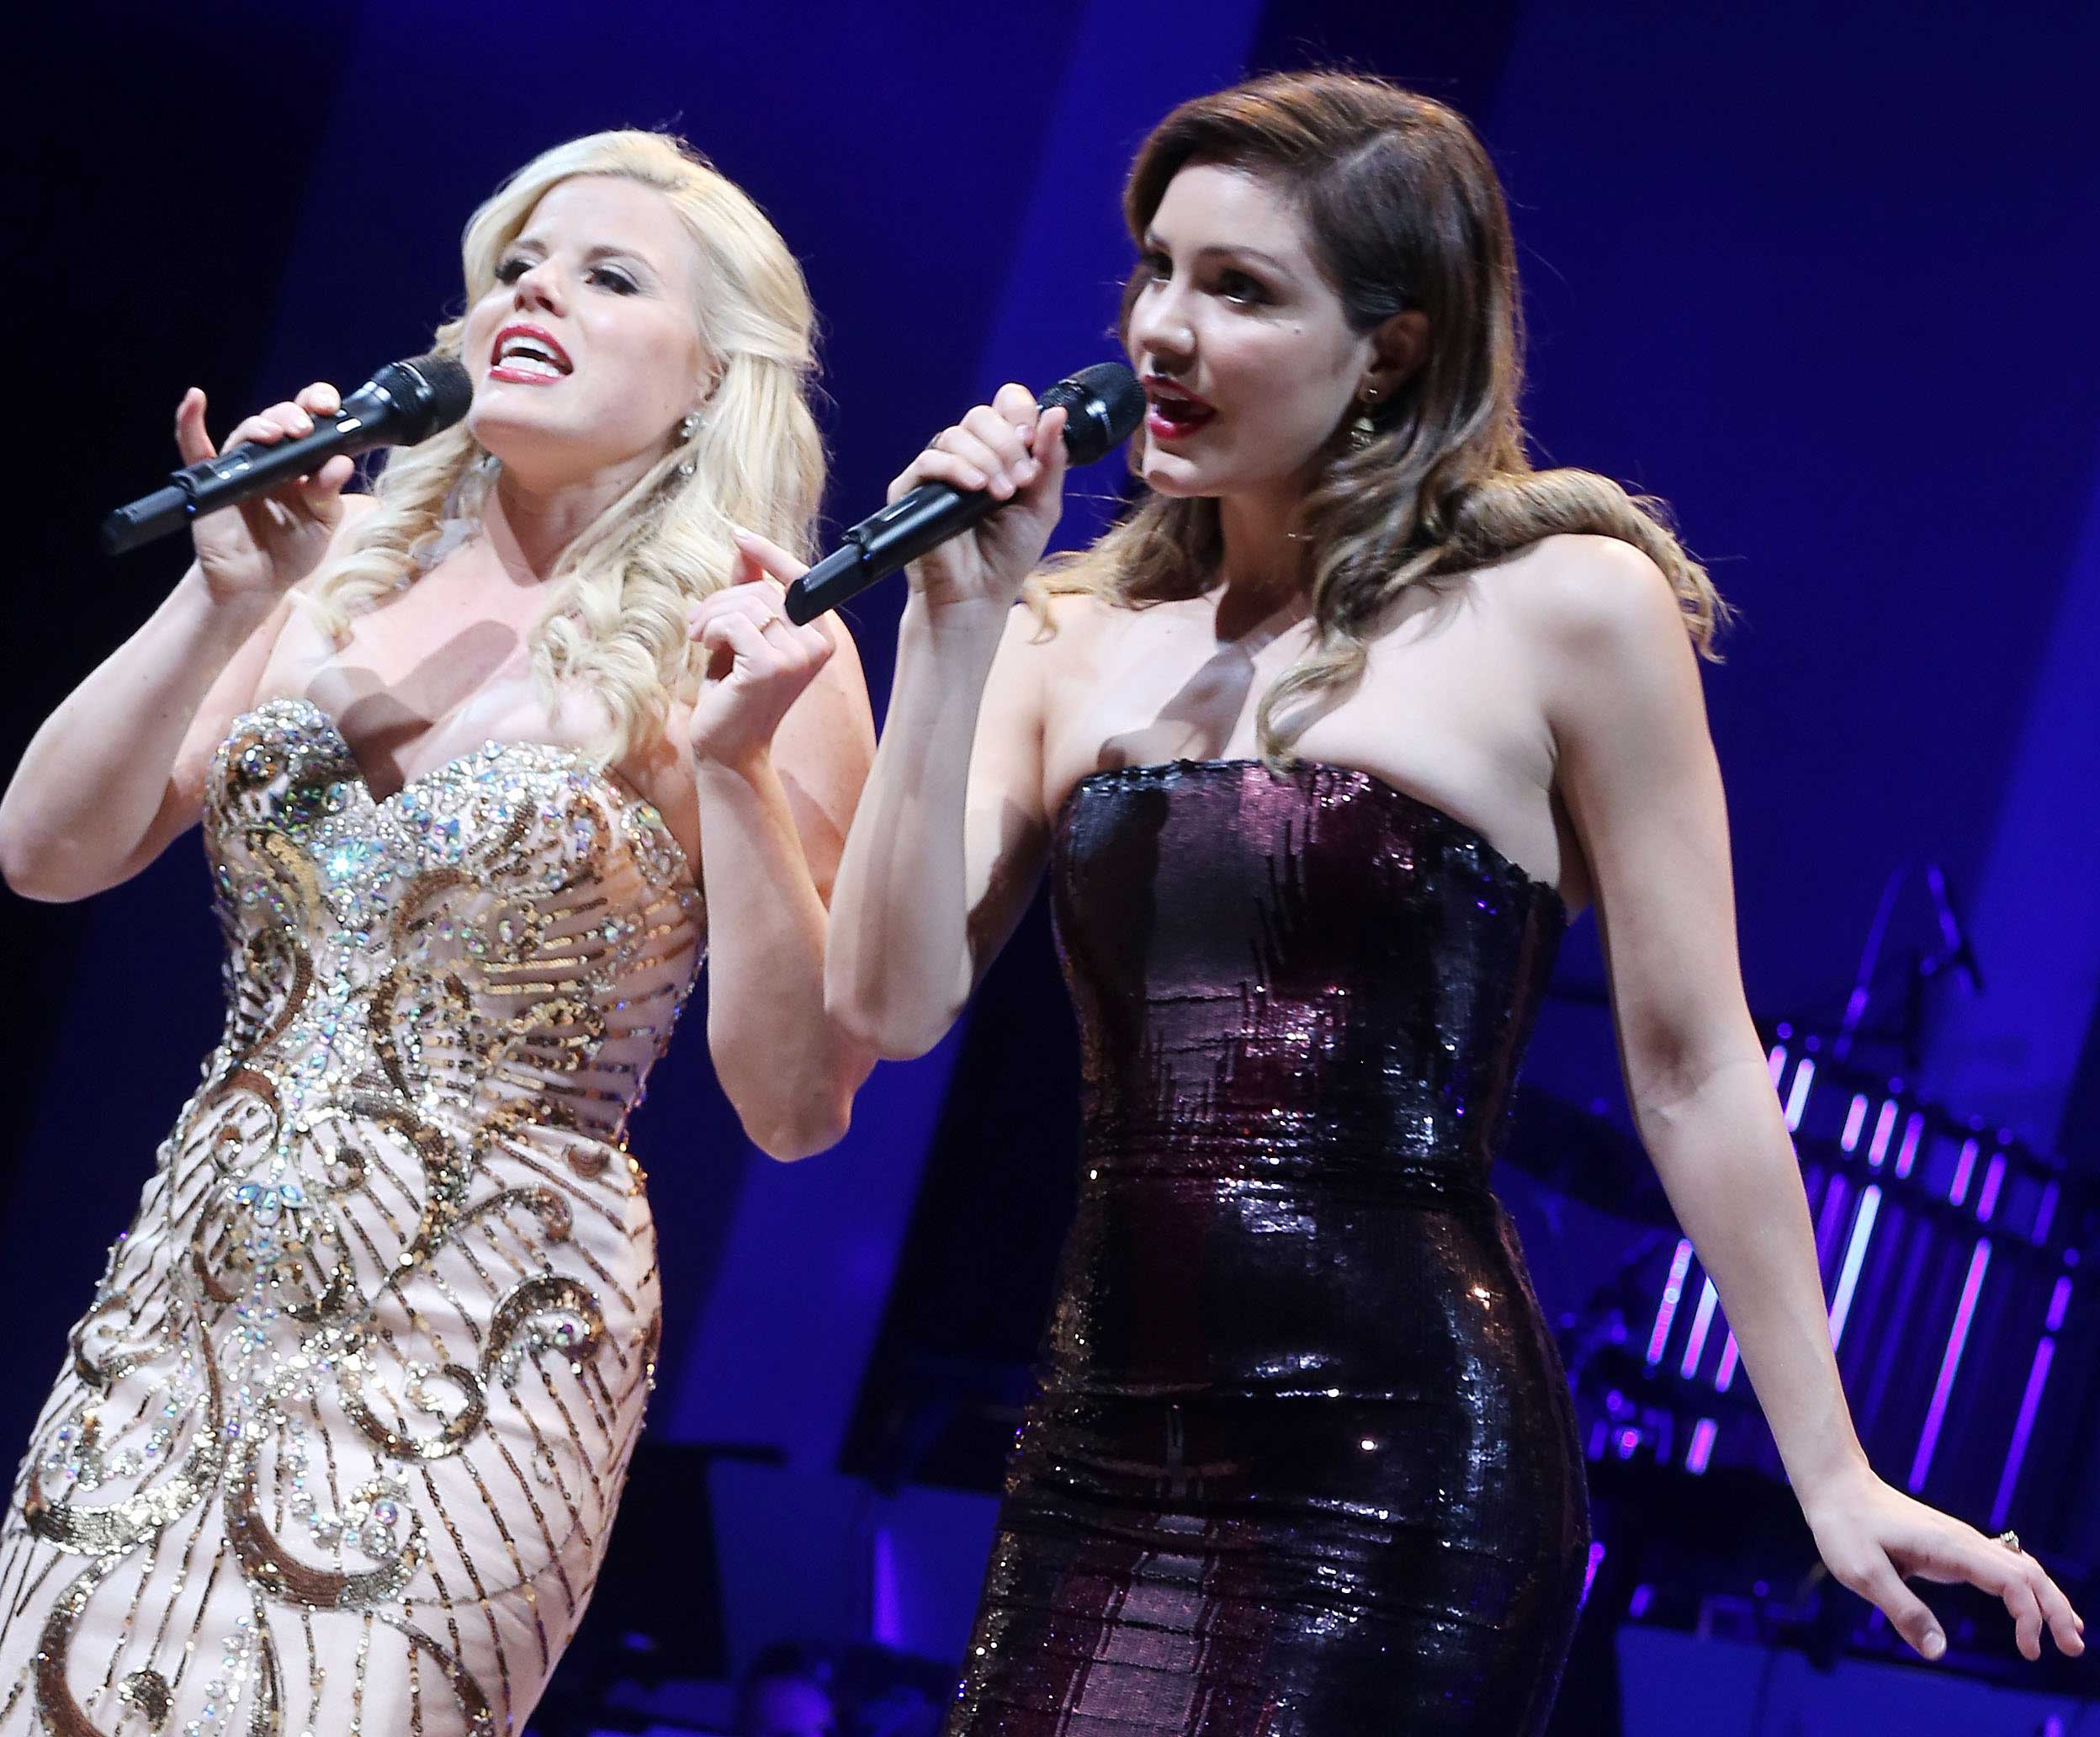 Megan Hilty and Katharine McPhee of the cast of NBC's  Smash  reunite for The Actors Fund of America presents  Bombshell: The Marilyn Monroe Musical  special event closing night performance at The Minskoff Theater on Broadway  in New York City on June 9, 2015.